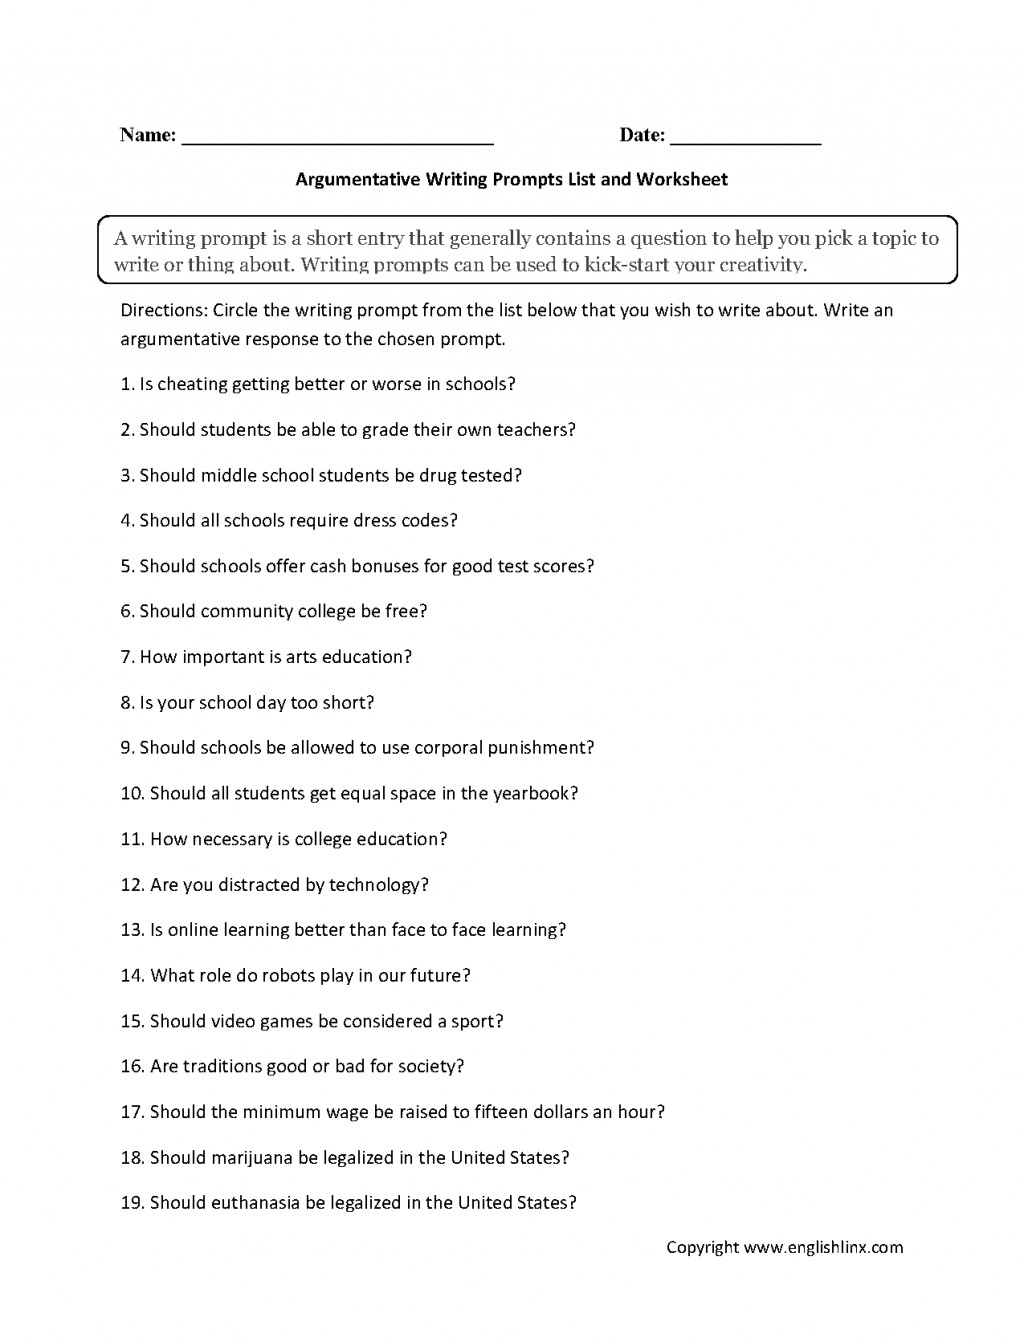 004 Essay Example Argumentative Writing Prompts List Worksheet Amazing Topic Funny Topics For College Students Secondary School Controversial Music Large